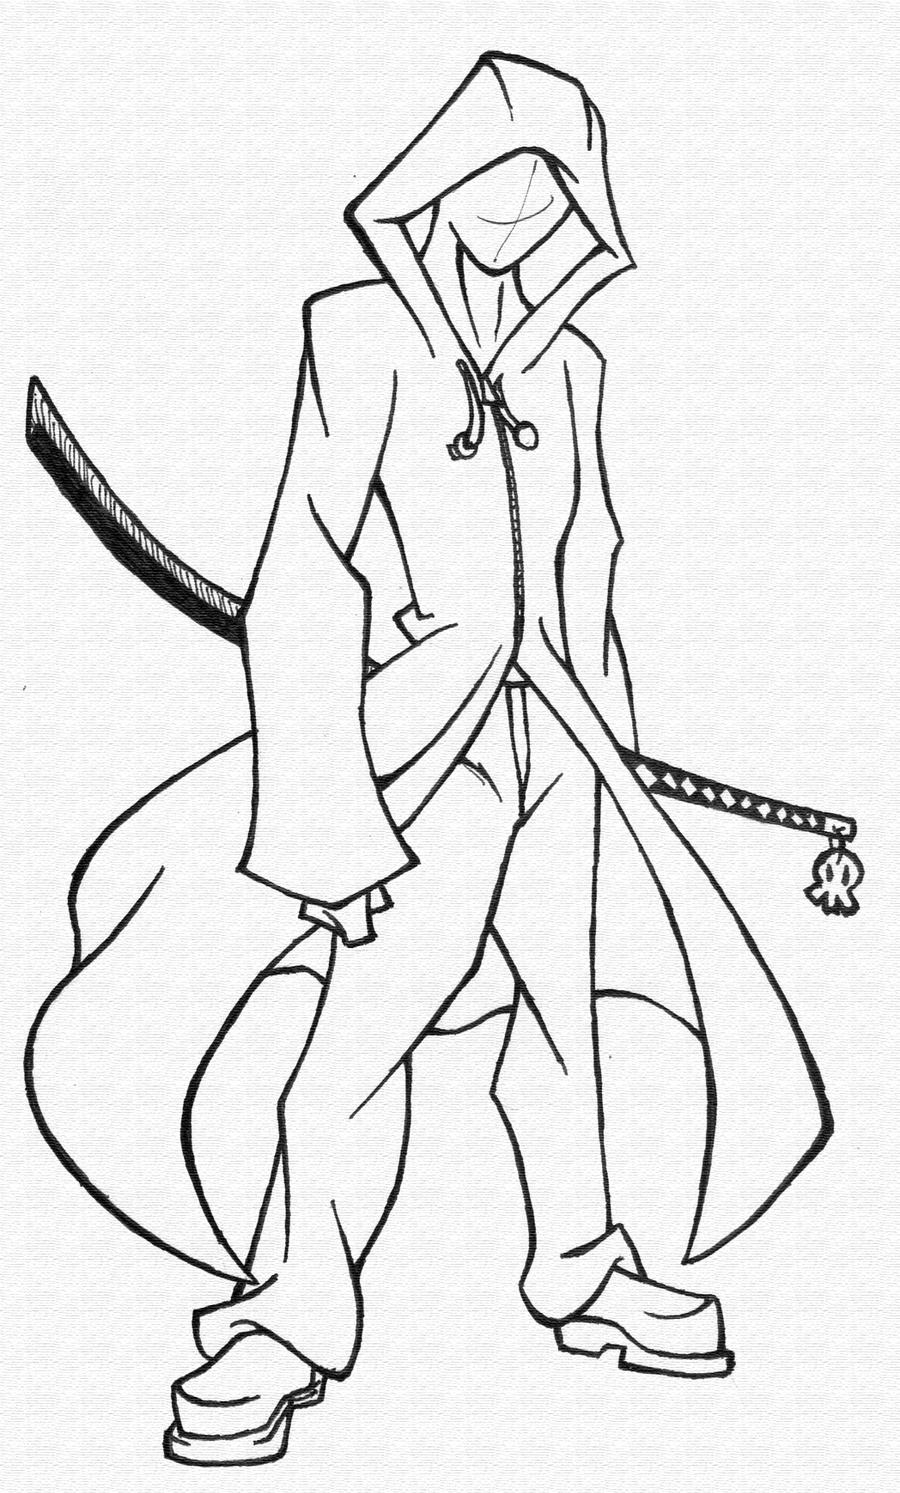 manga character template - drawing sketch anime characters sketch coloring page